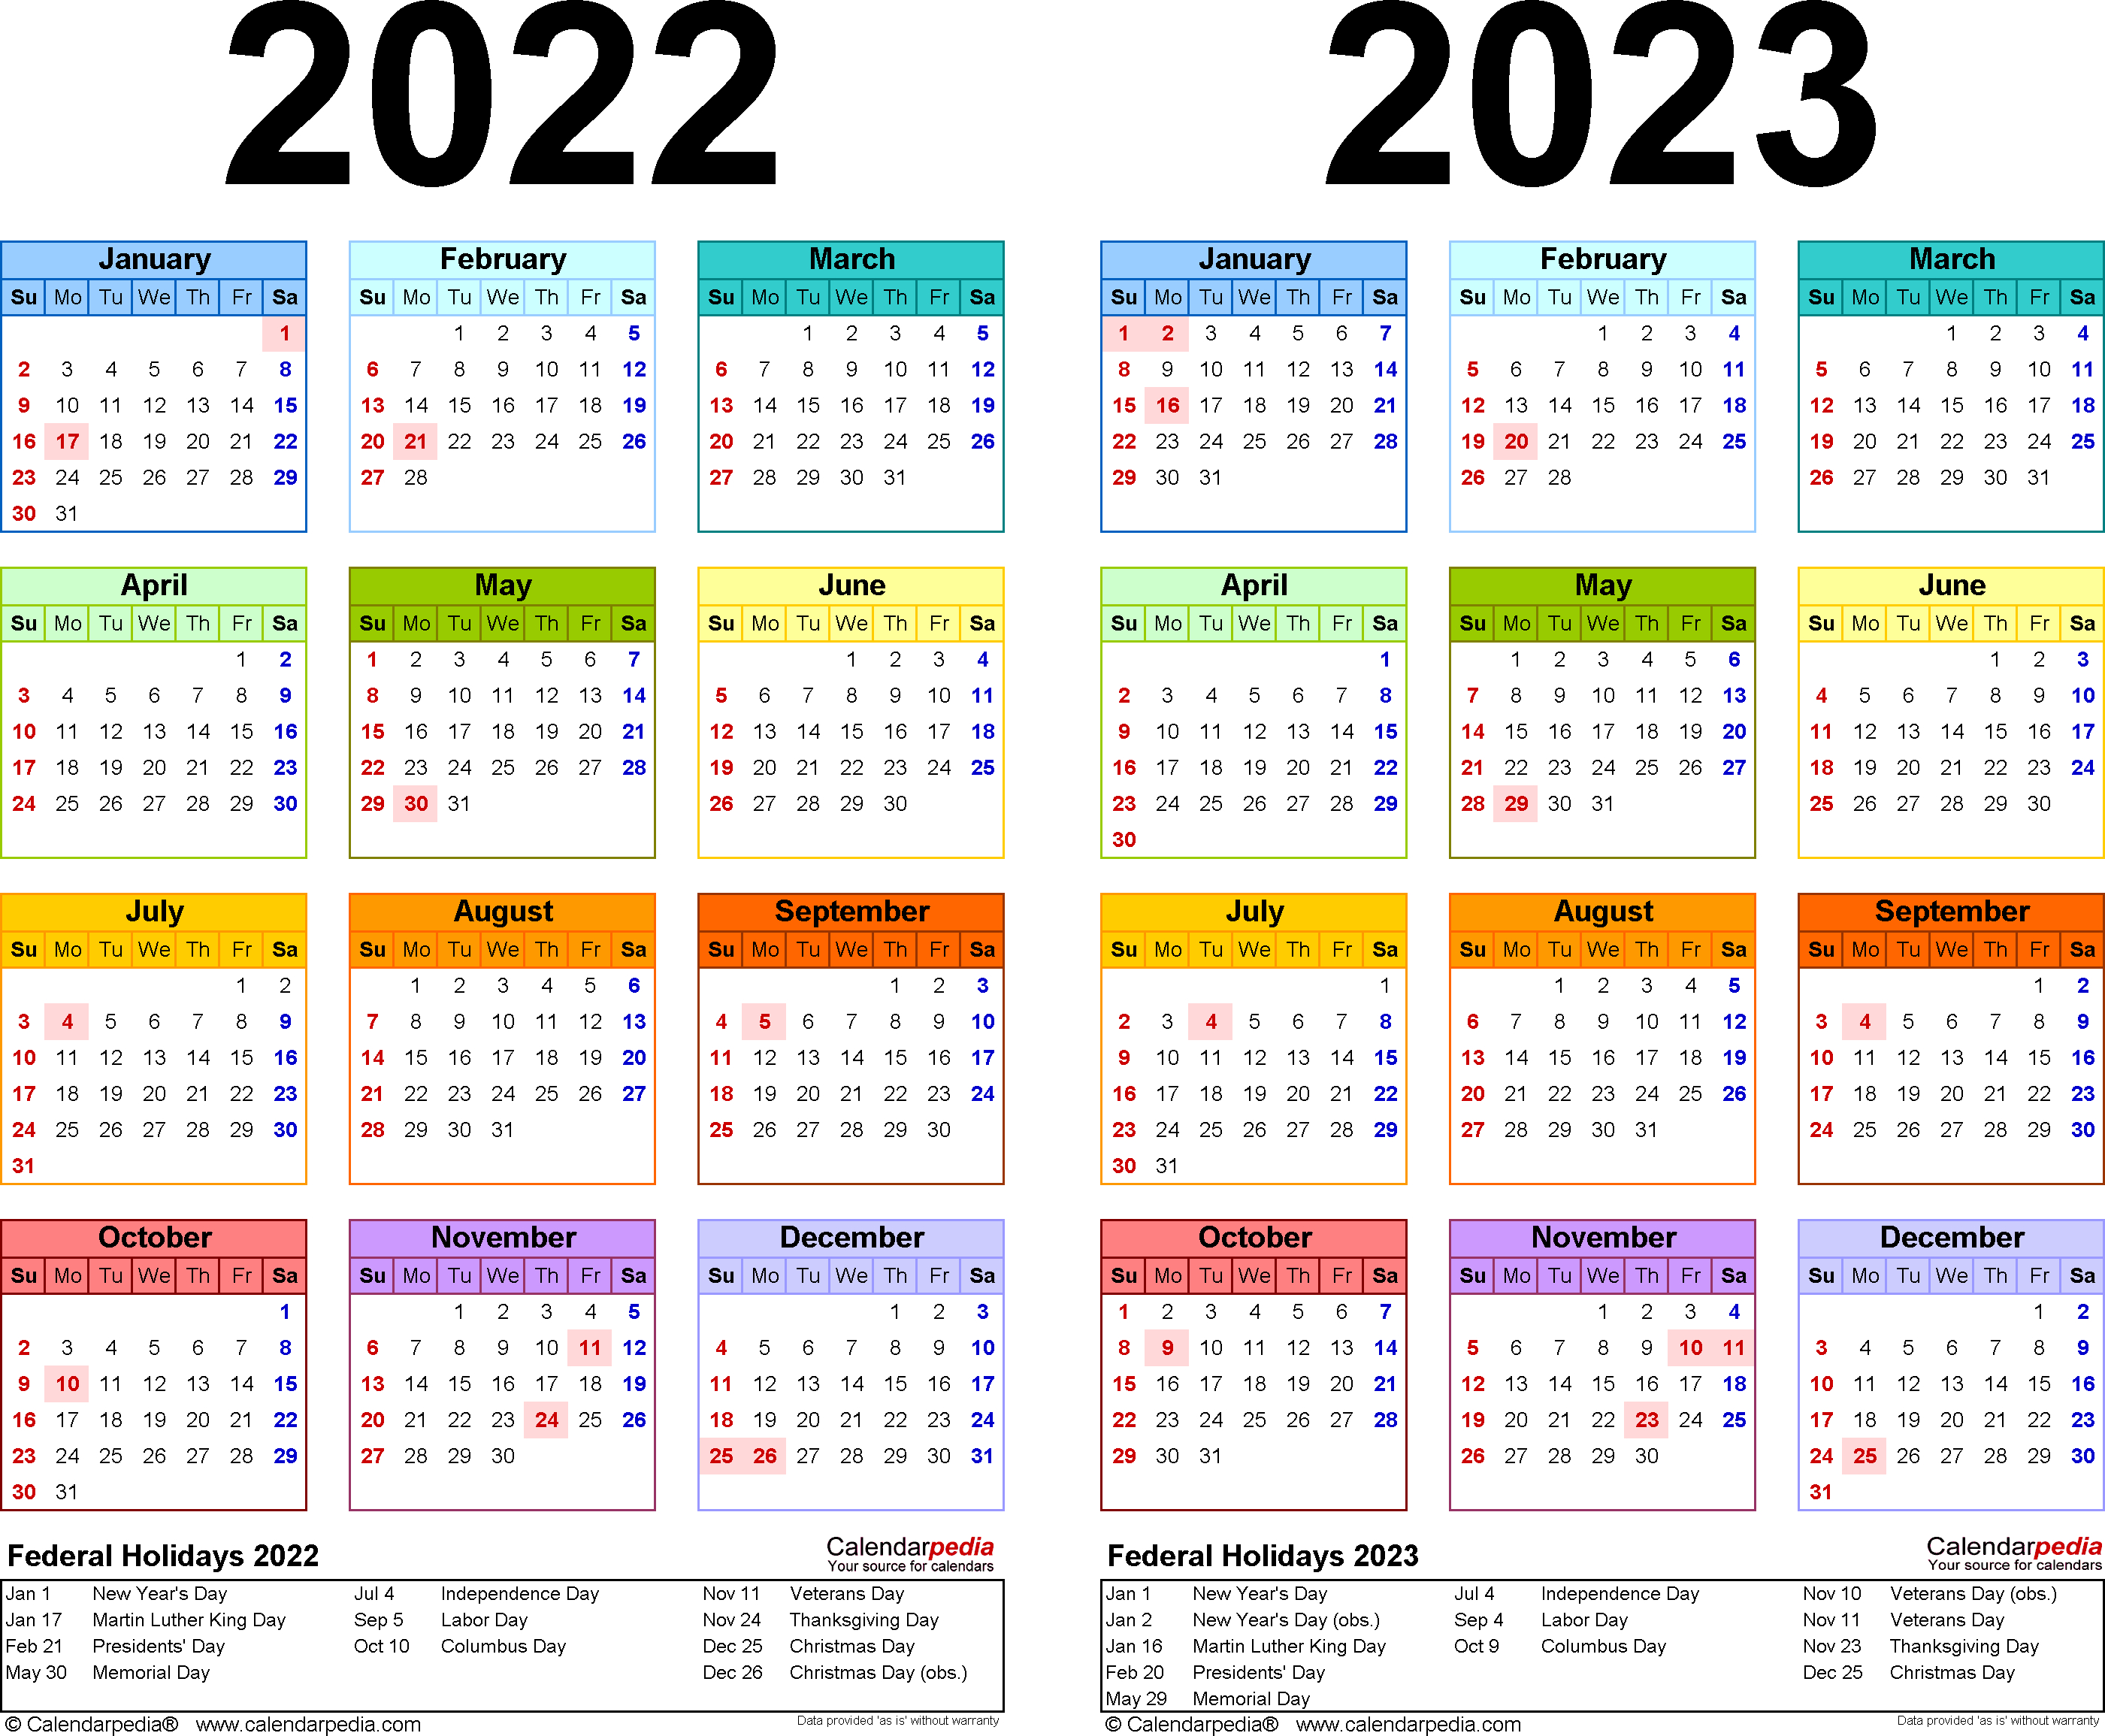 2022-2023 Calendar - Free Printable Two-Year Word Calendars